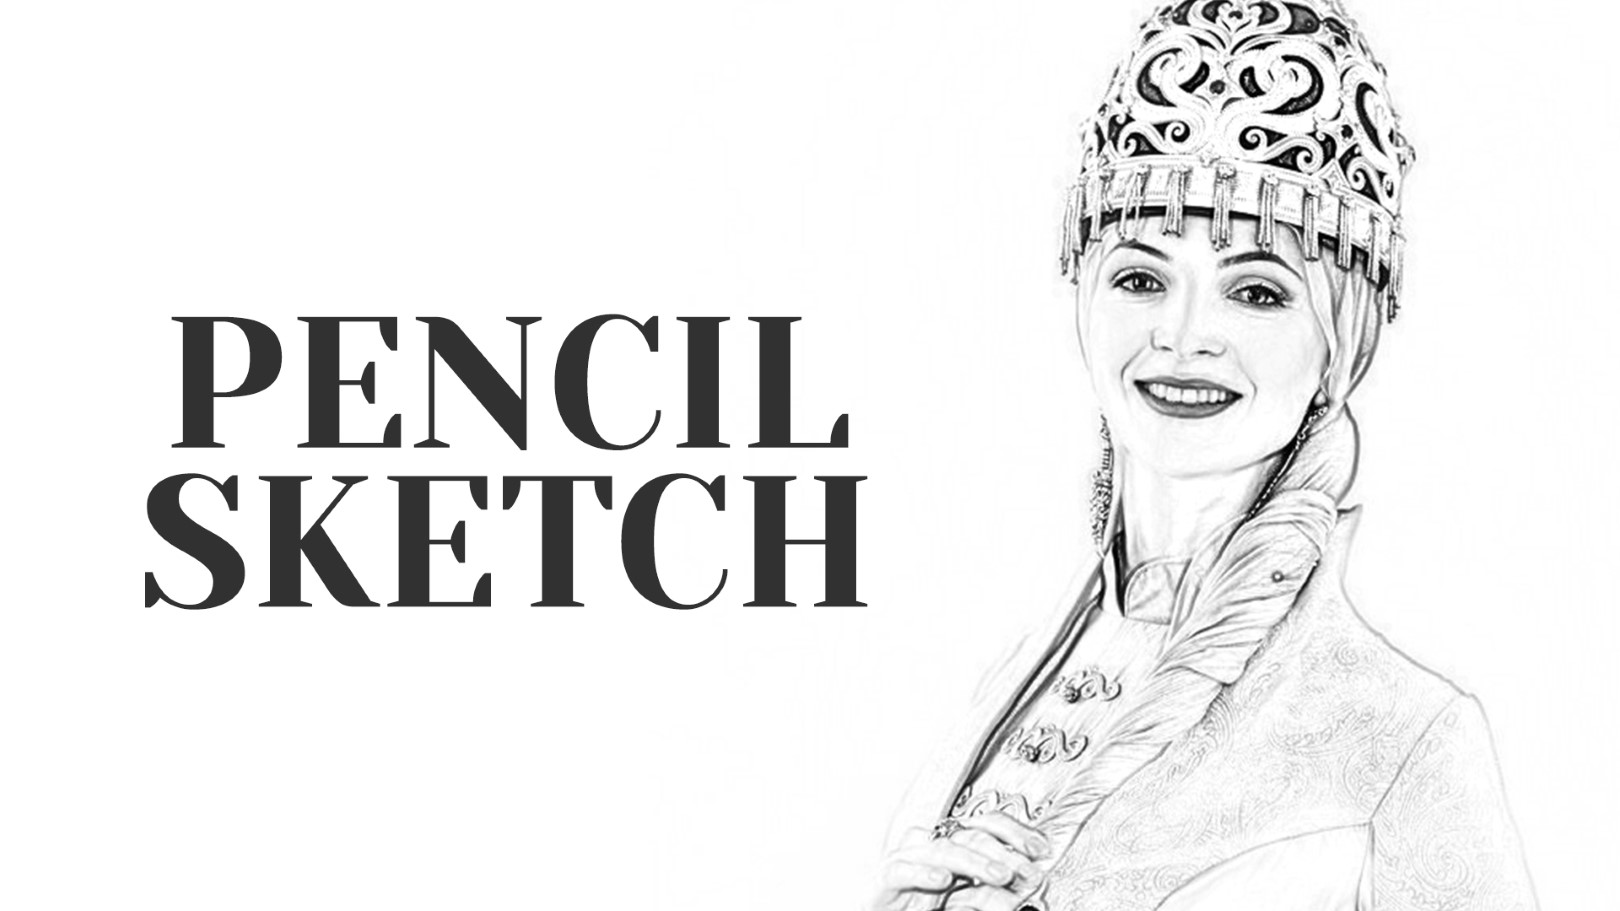 Photograph to sketch art photoshop action free download